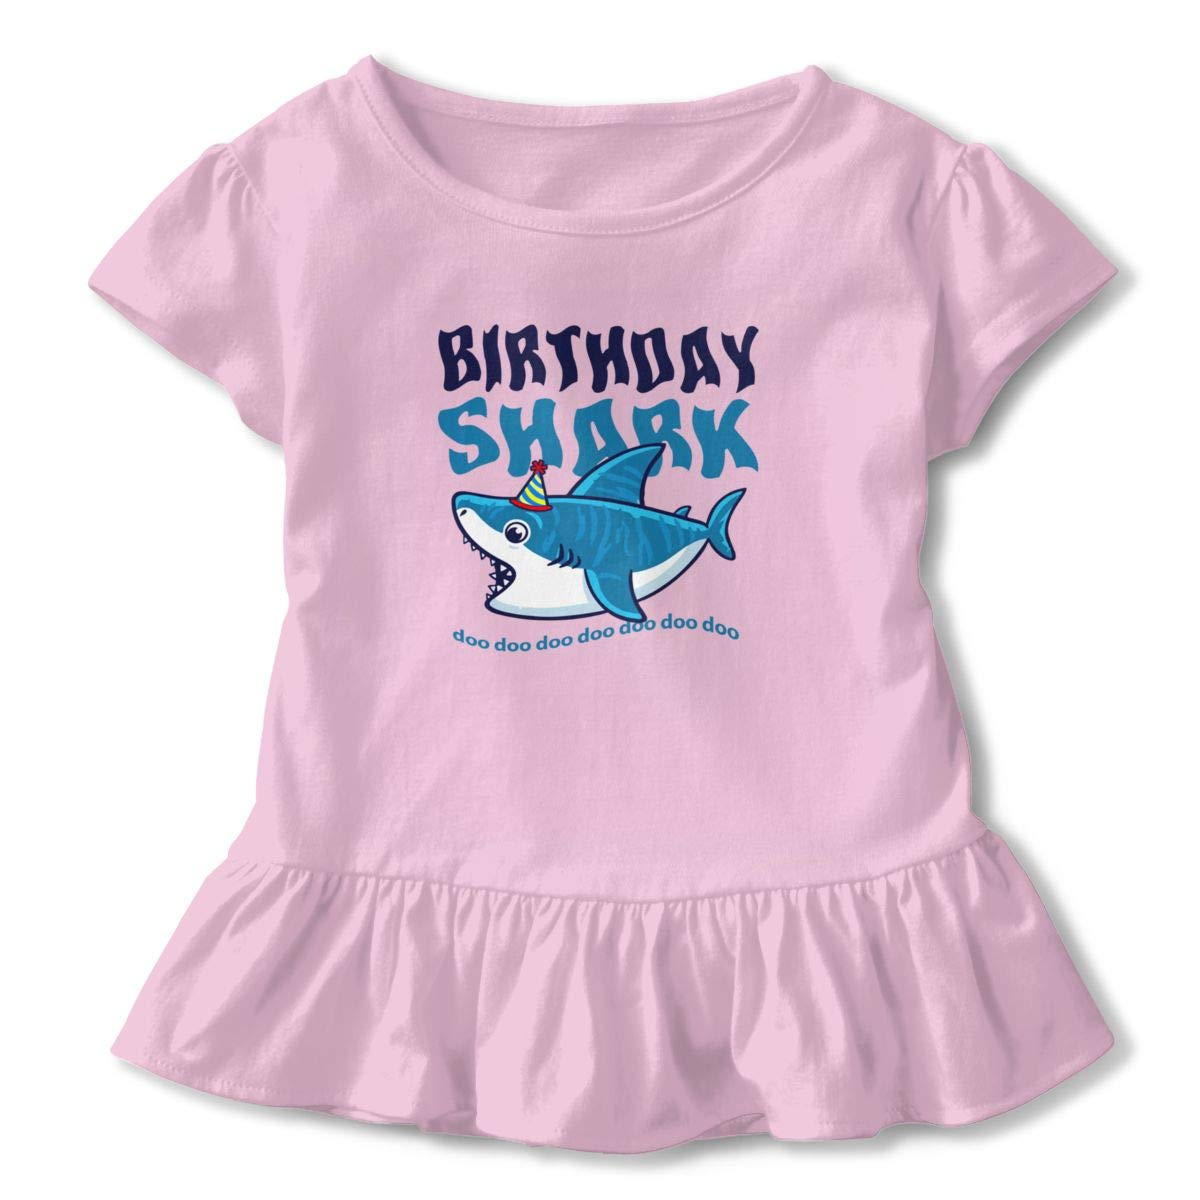 CZnuen 1st Birthday Shark Baby Girls Basic Short Puff Sleeve Round Neck Ruffle T-Shirt